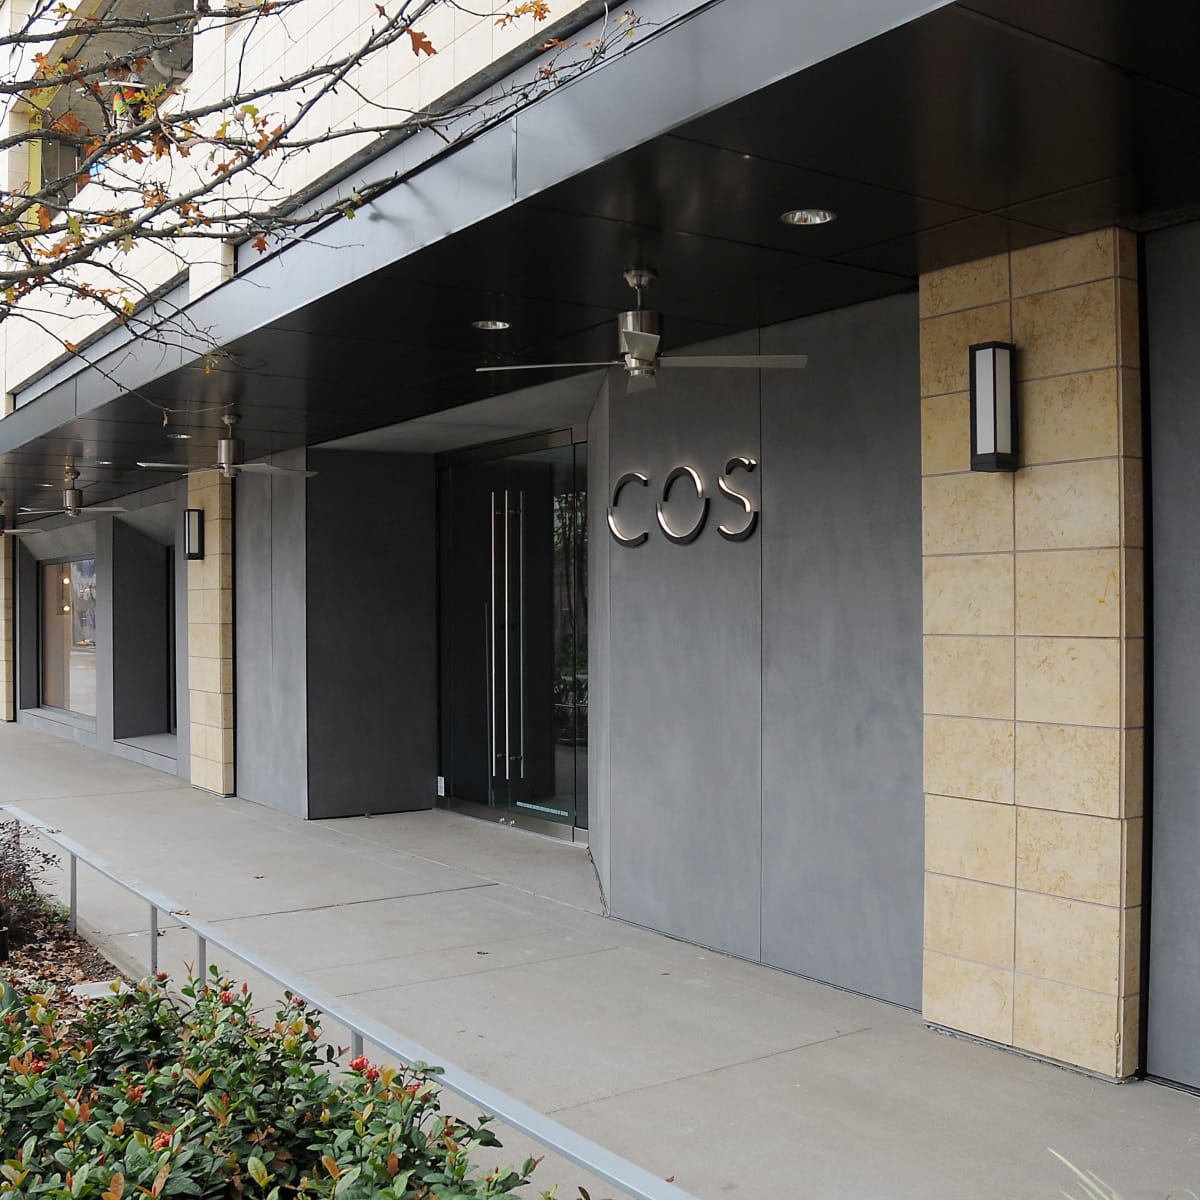 COS exterior at River Oaks District